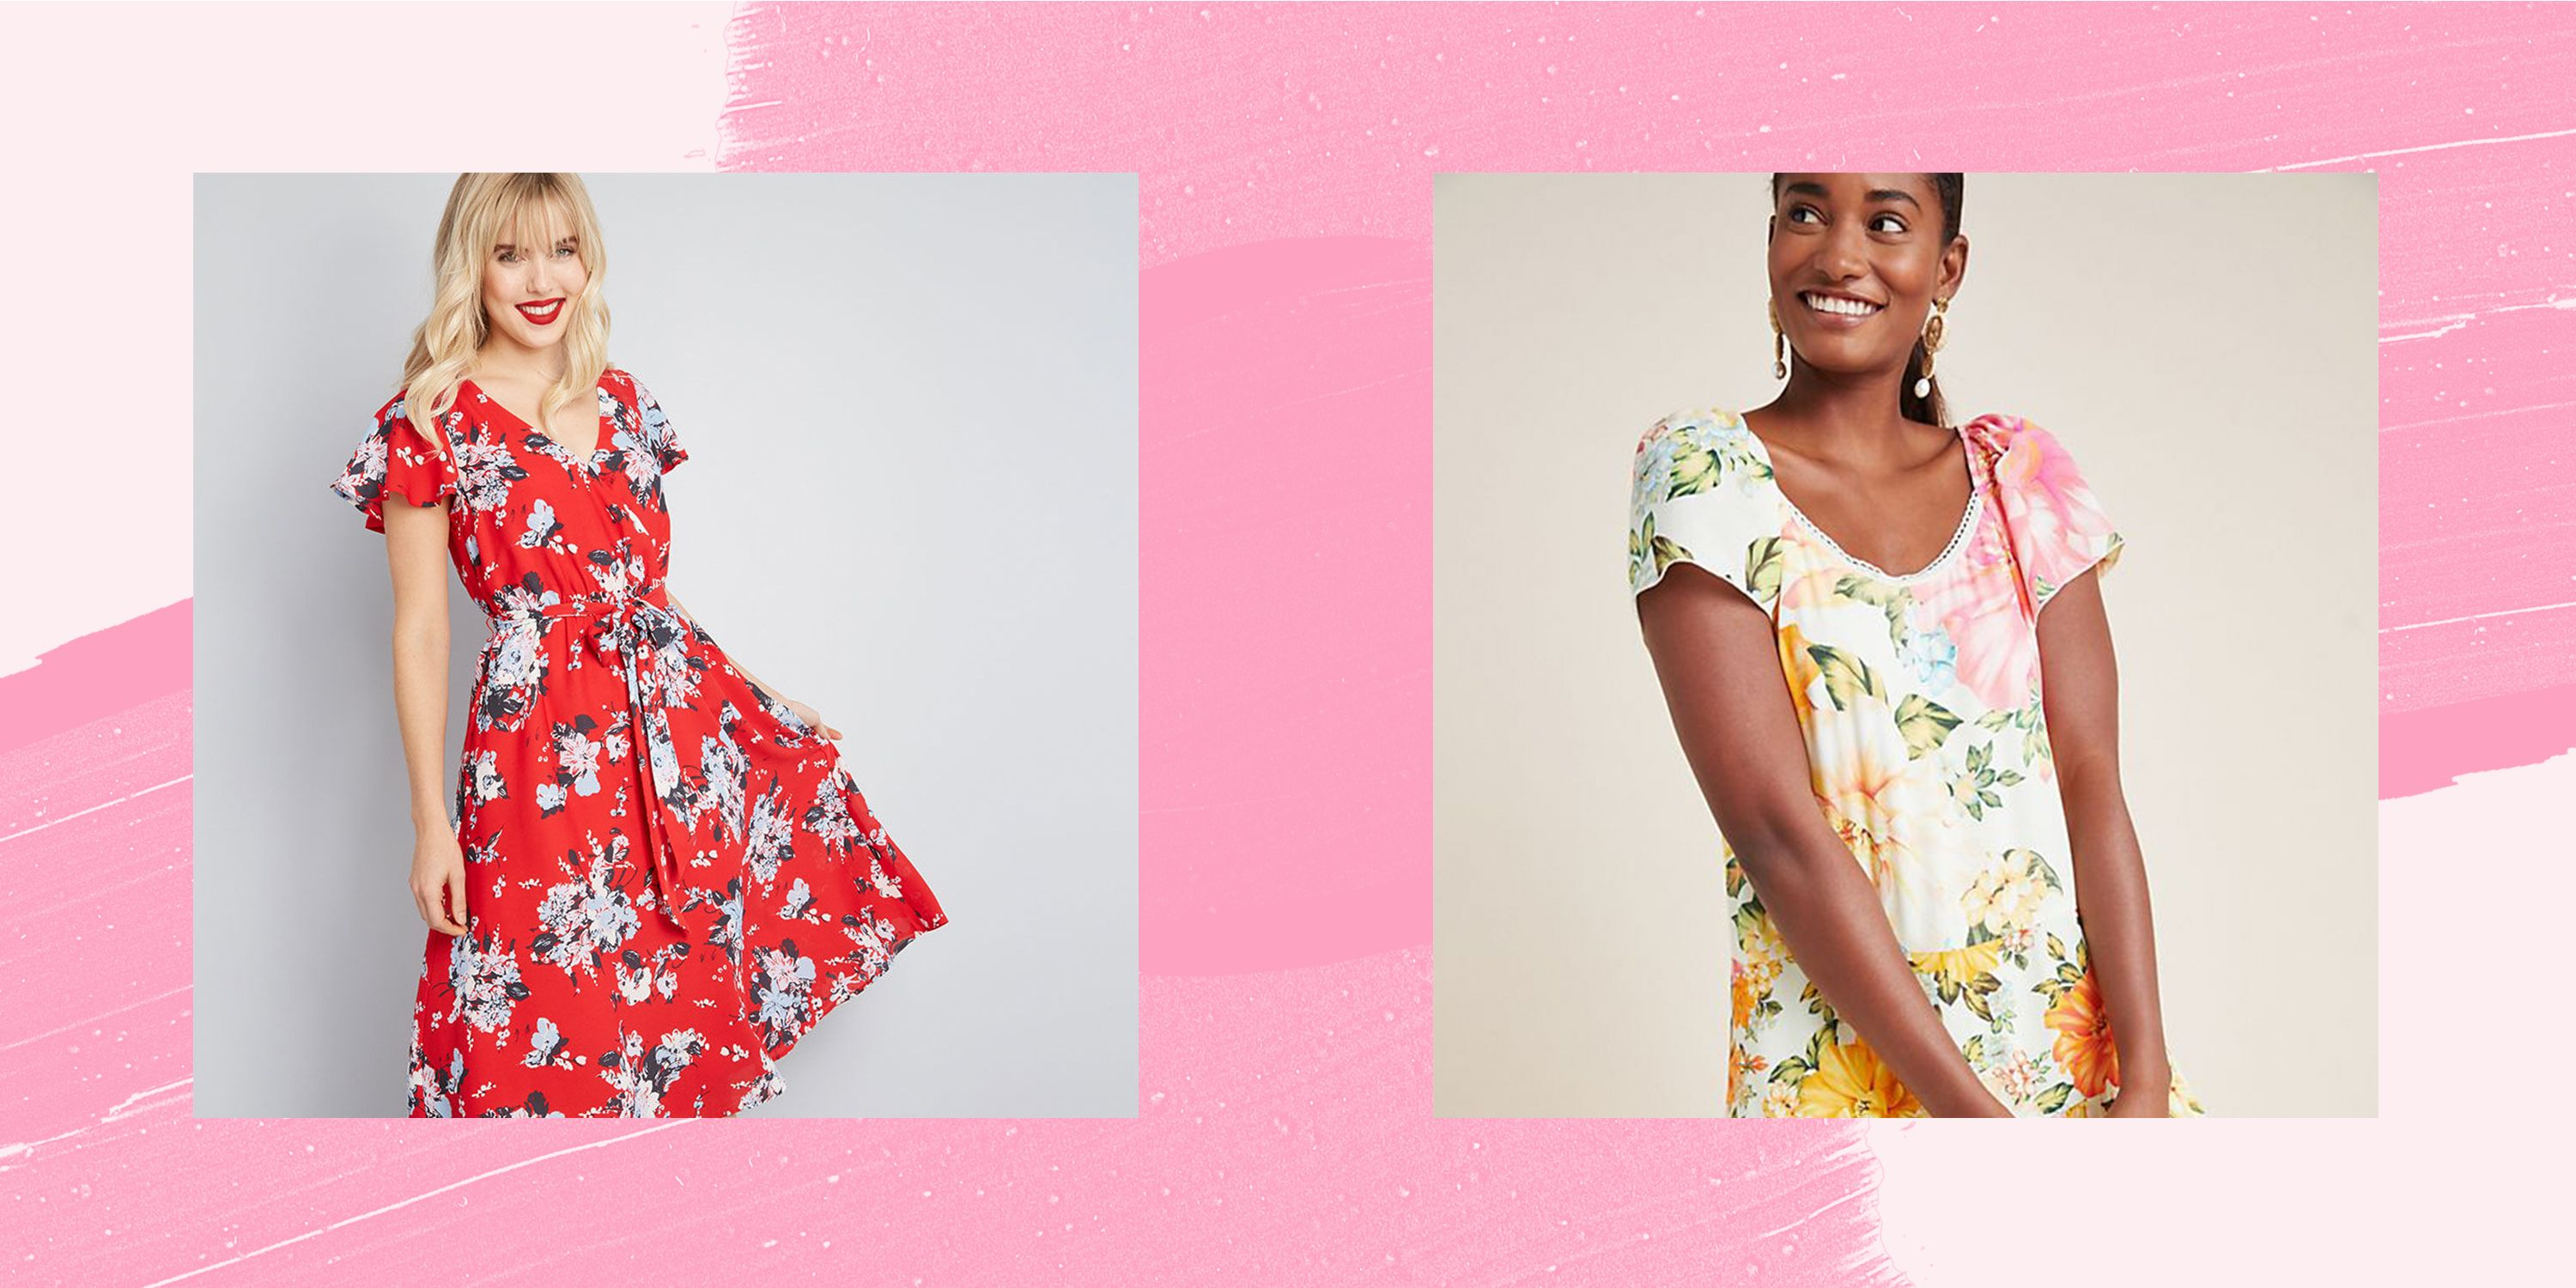 846a62adeb05 10 Womens Easter Dresses 2018 - Cute Dresses for Easter Sunday